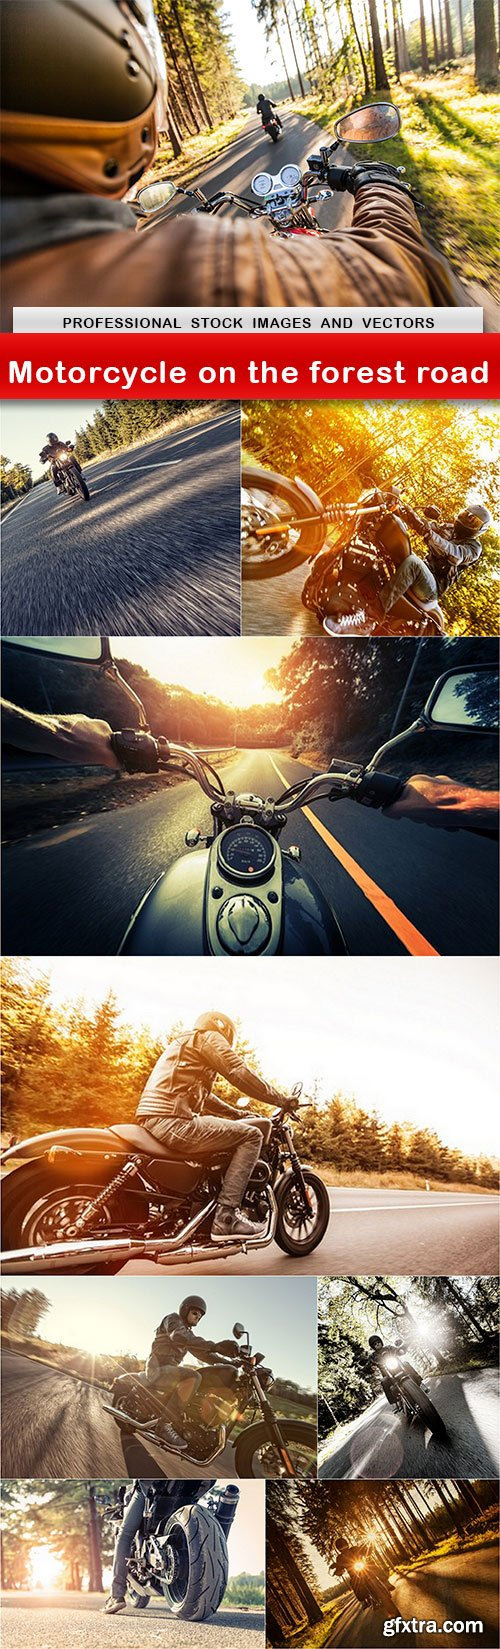 Motorcycle on the forest road - 9 UHQ JPEG